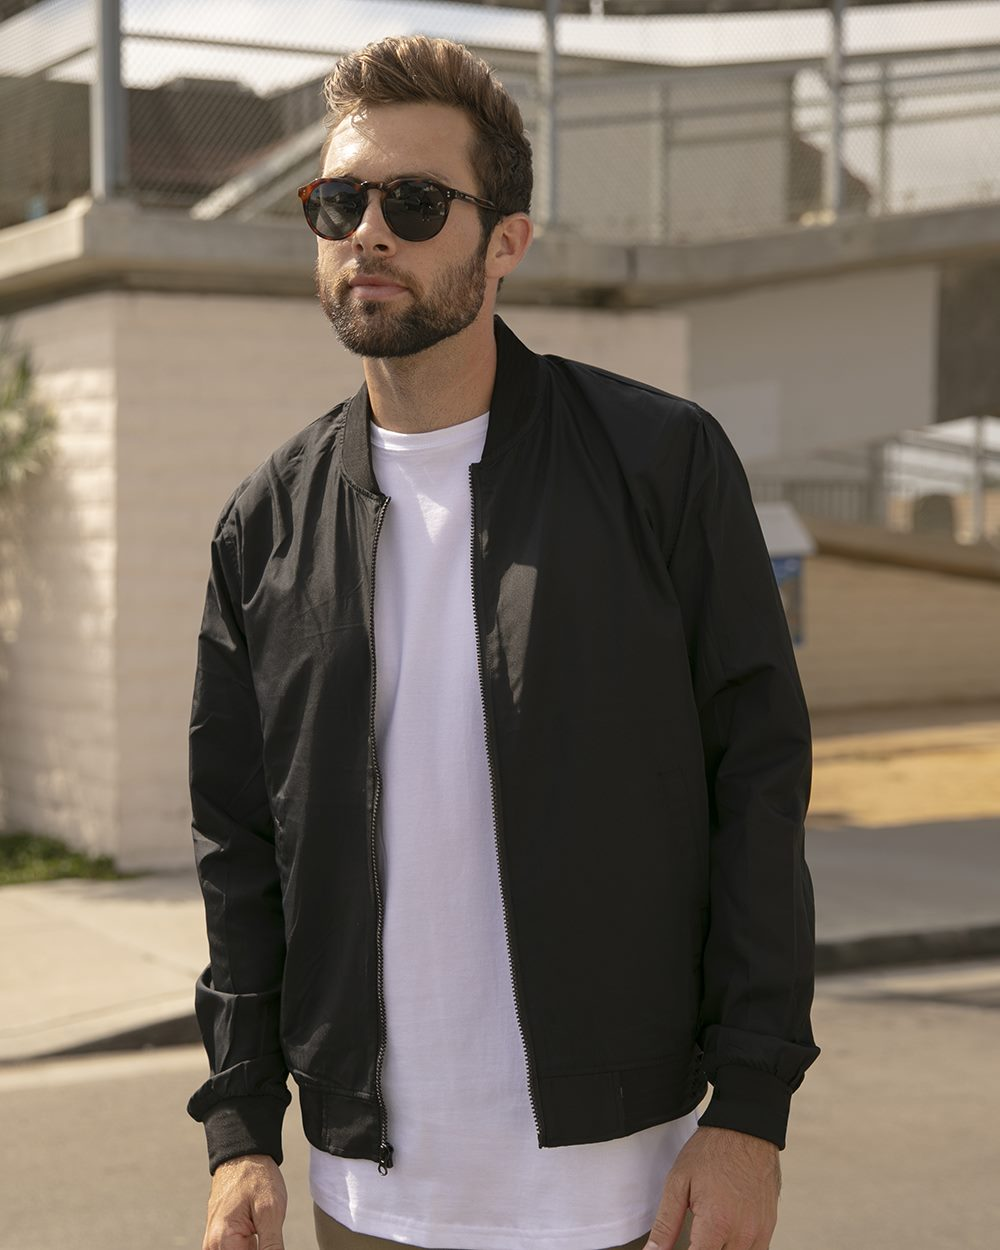 The Bomber Jacket for Spring